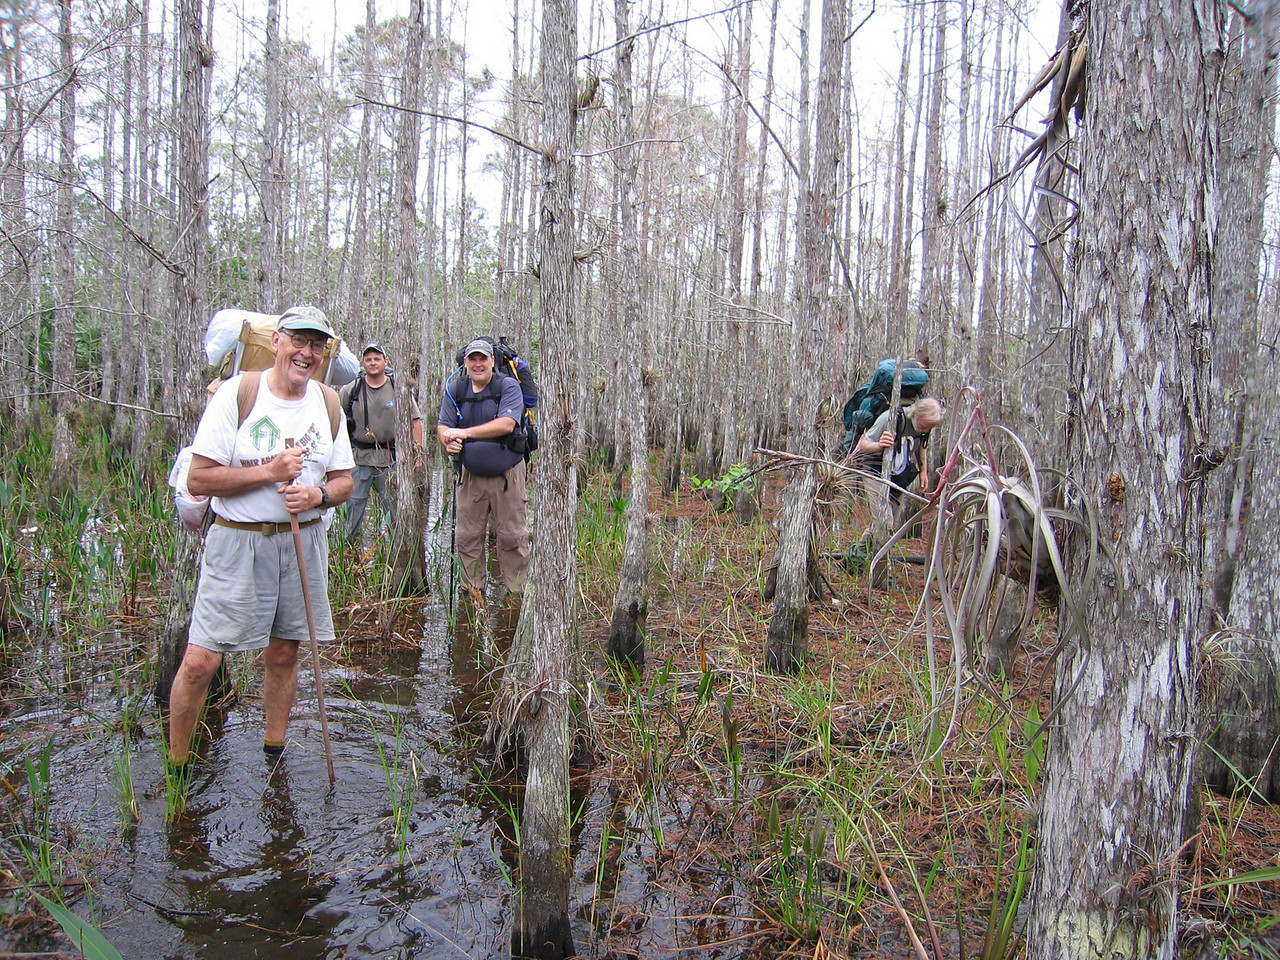 Eastbounders wading along<br /> photo credit: Raphael Clemente / Florida Trail Association